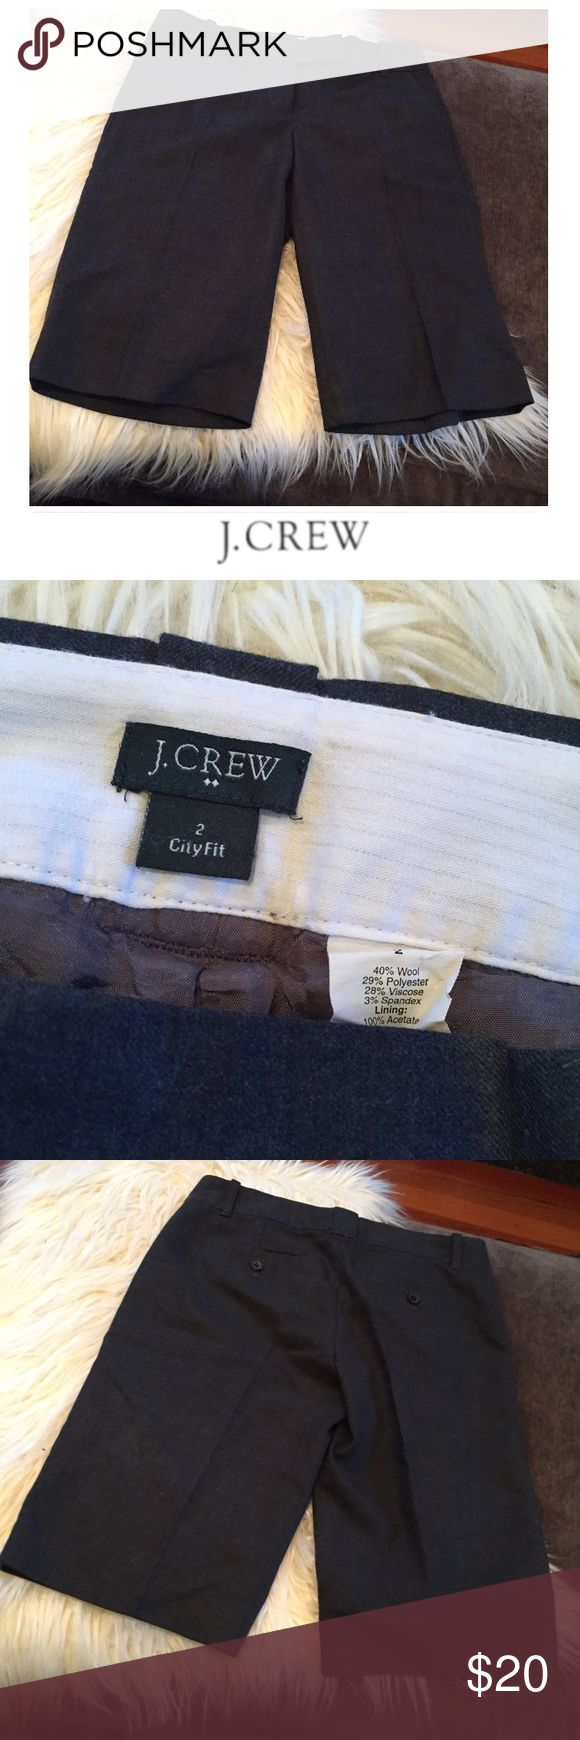 J. Crew City Fit Wool Blend Charcoal Long Shorts J. Crew City Fit Wool Blend Charcoal Long Shorts. Creased and lined. Great for winter if you wear tights. Gently worn. 8.25 inch rise. 12 inch inseam. Great condition. Feel free to make an offer or bundle & save! J. Crew Shorts